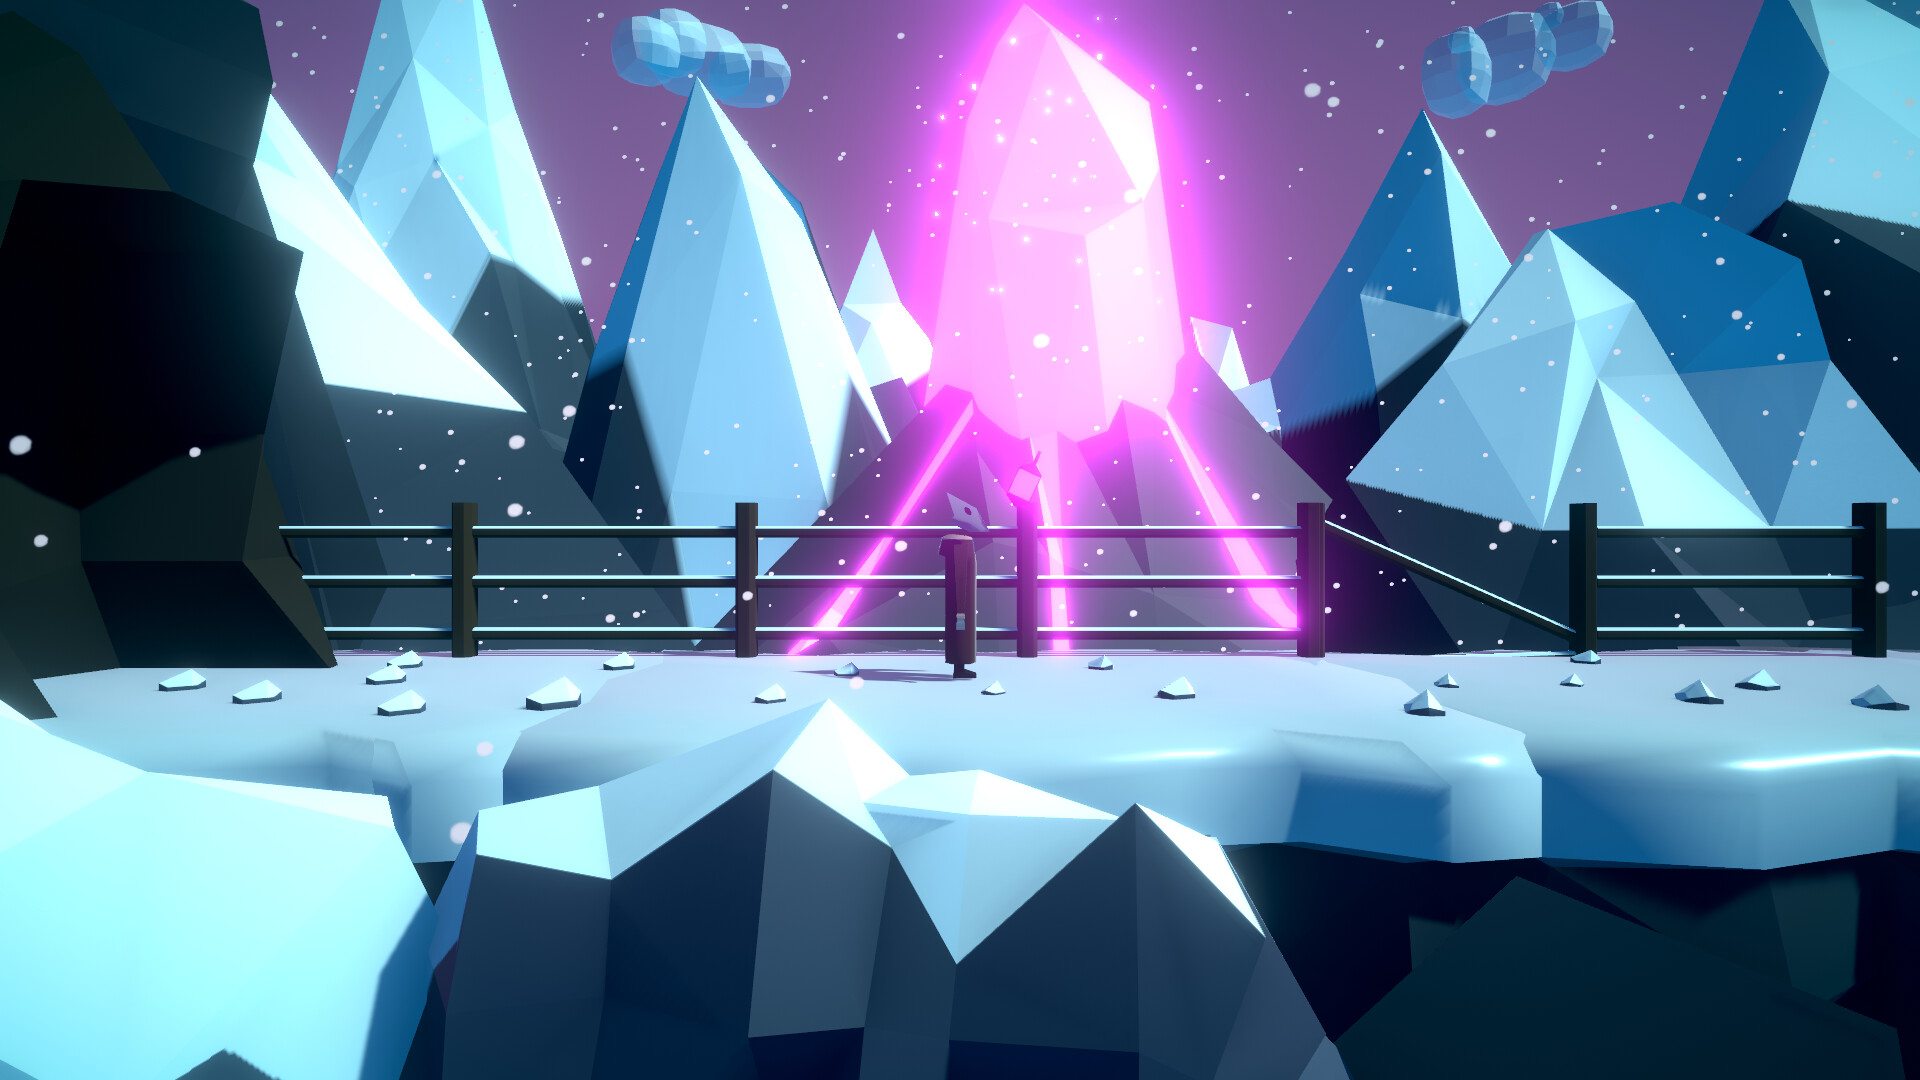 Close-up of the Mountain. This is a moment before the player begins a cut-scene.